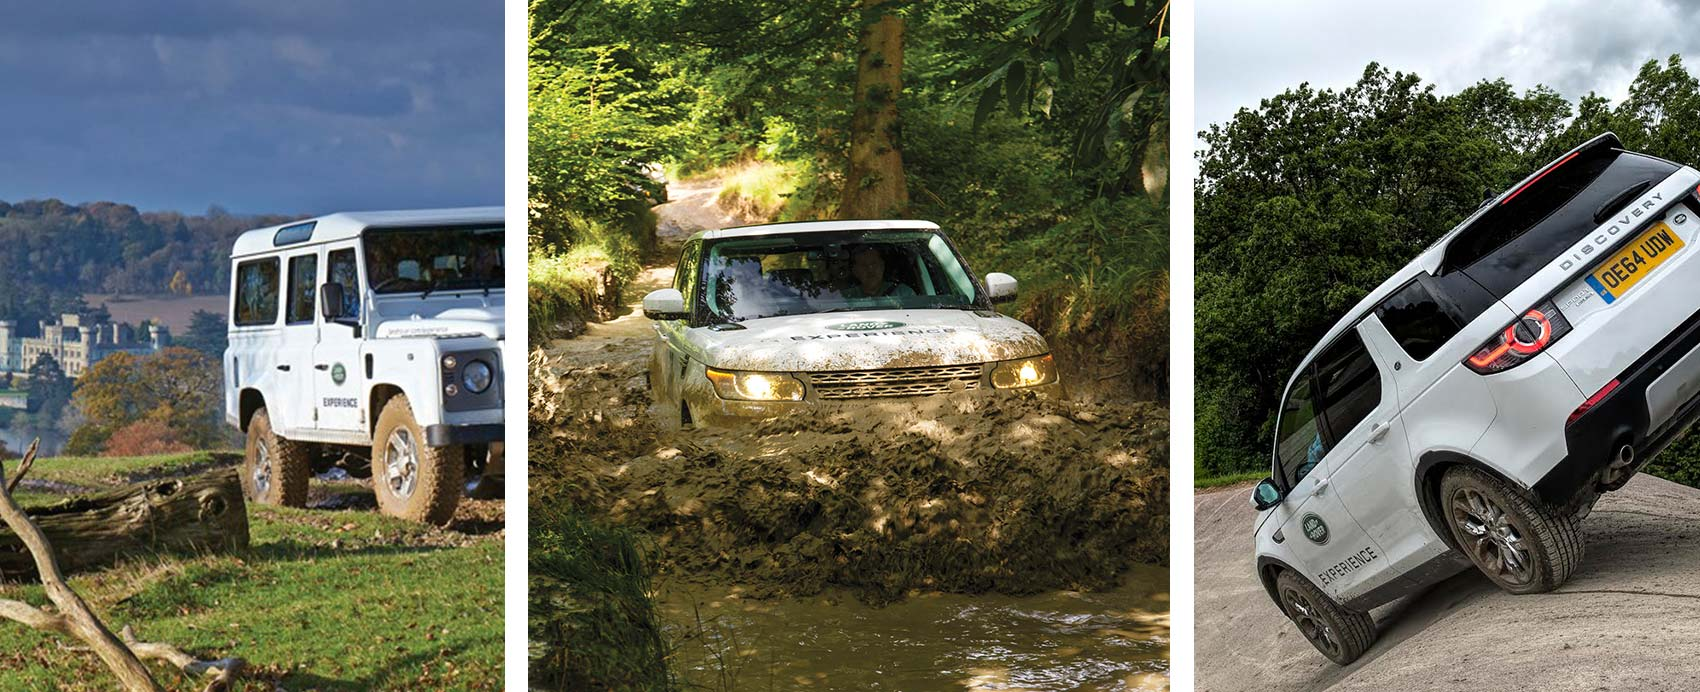 Re-ignite the explorer in you on the world?s most historic and challenging Land Rover off road trails